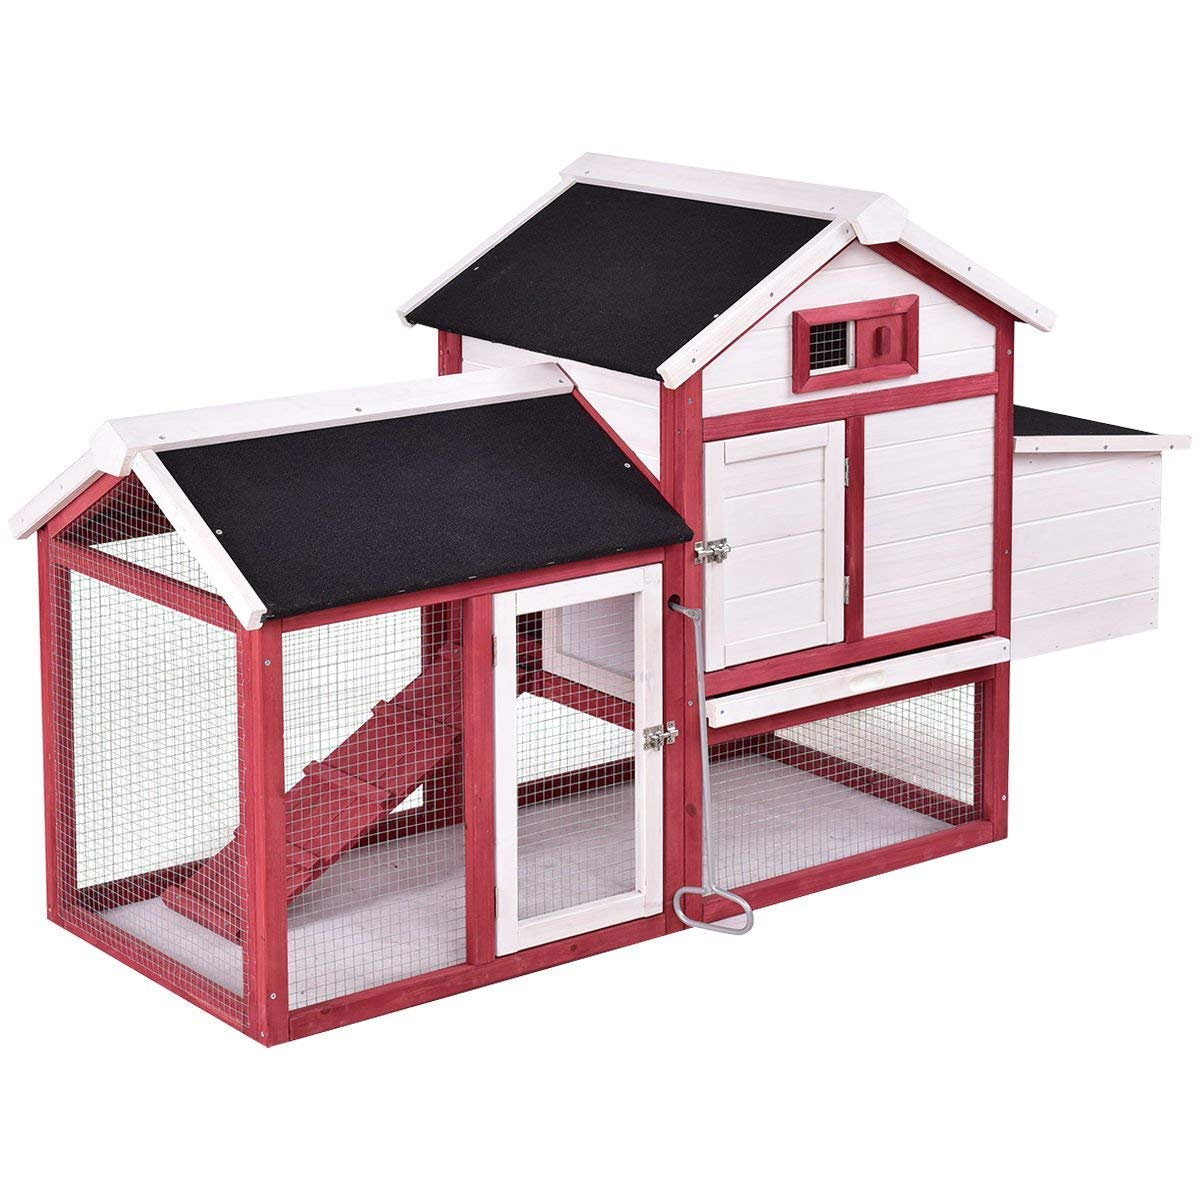 Tangkula 60'' Large Rabbit Hutch Wooden White Rabbit Bunny Outdoor Animal Cage Rabbit Hutch House with Black Linoleum Roof by Tangkula (Image #1)